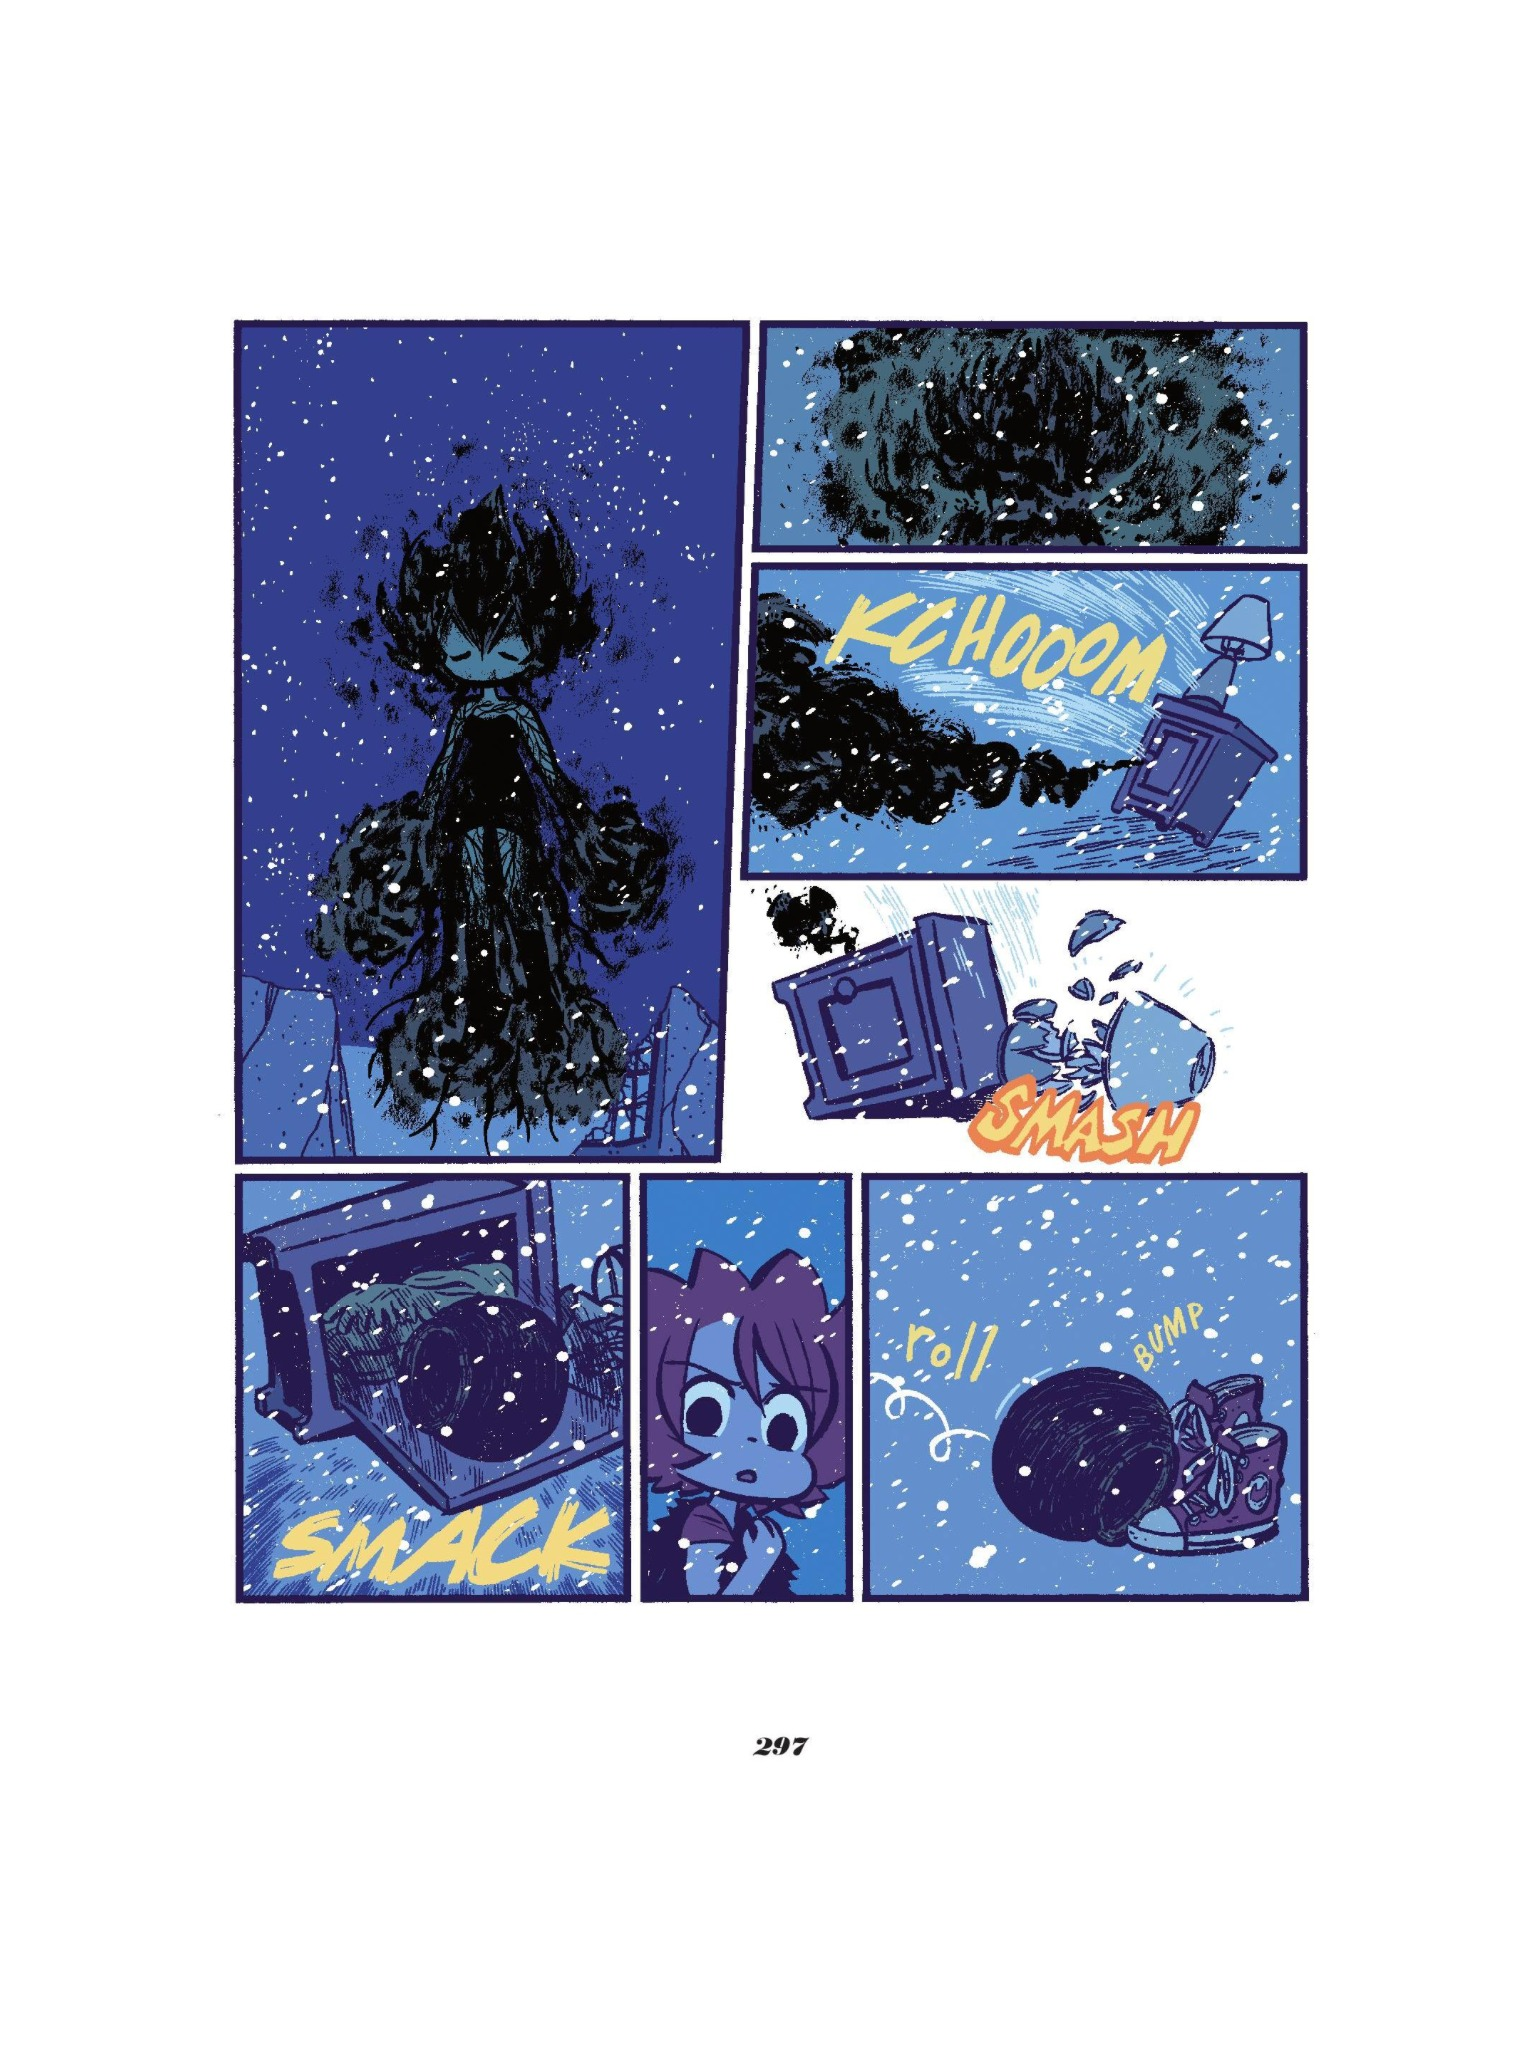 Read online Seconds comic -  Issue # Full - 297